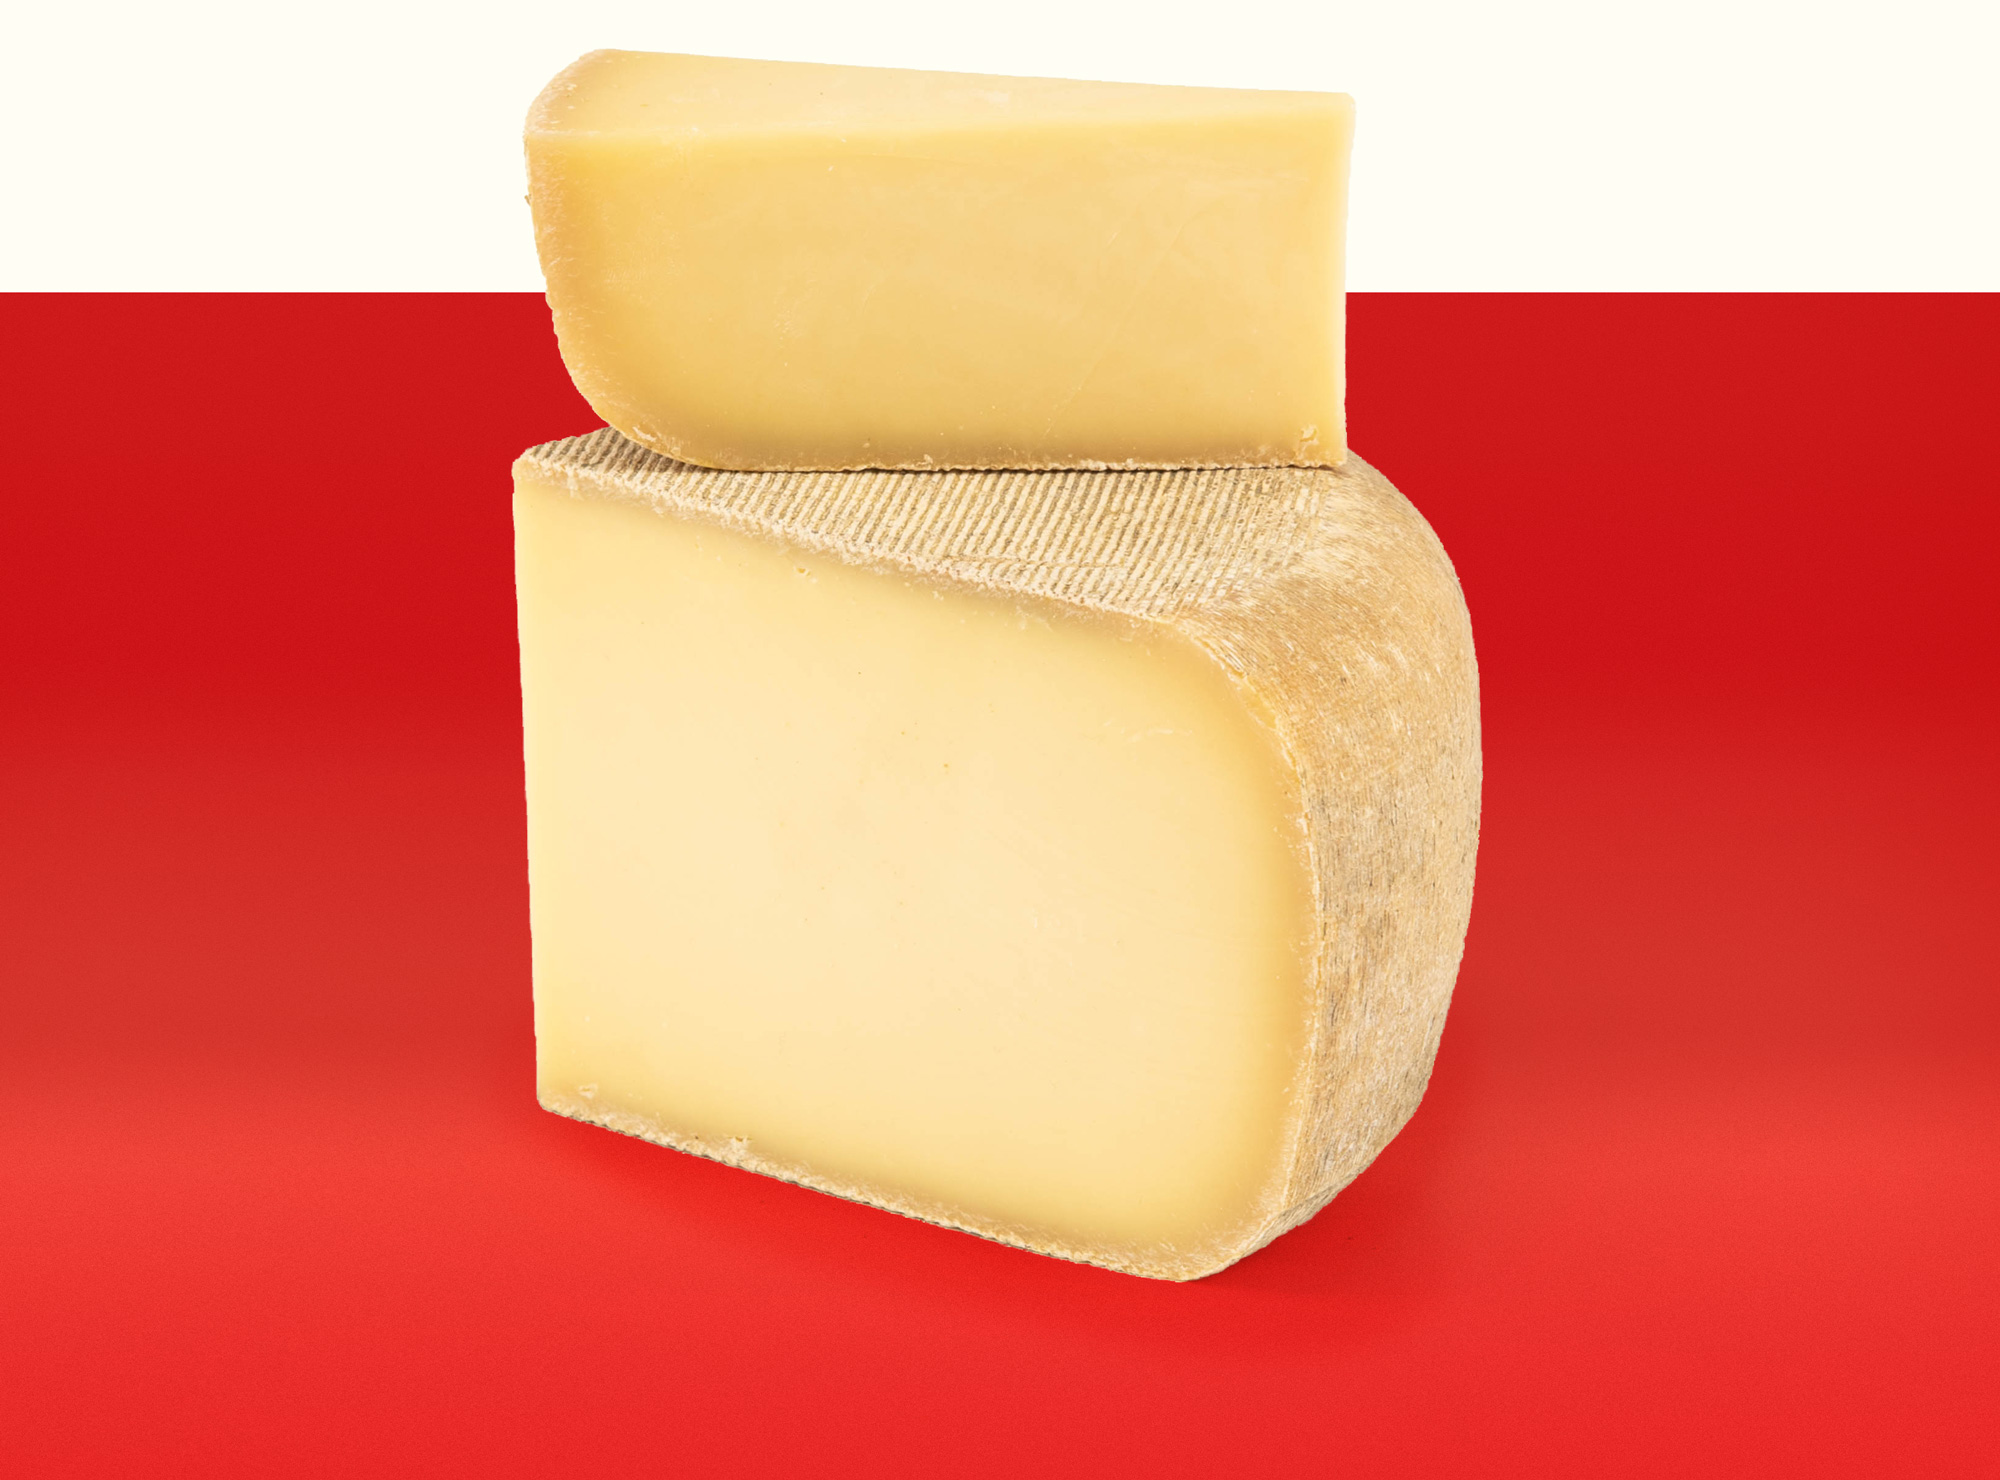 Gouda - This creamy traditional Dutch-style gouda evokes flavors of salted caramel and butterscotch with a remarkably long-lasting umami finish.Ingredients: Pasteurized Local Jersey Cow Milk, Salt, Cultures & Enzymes